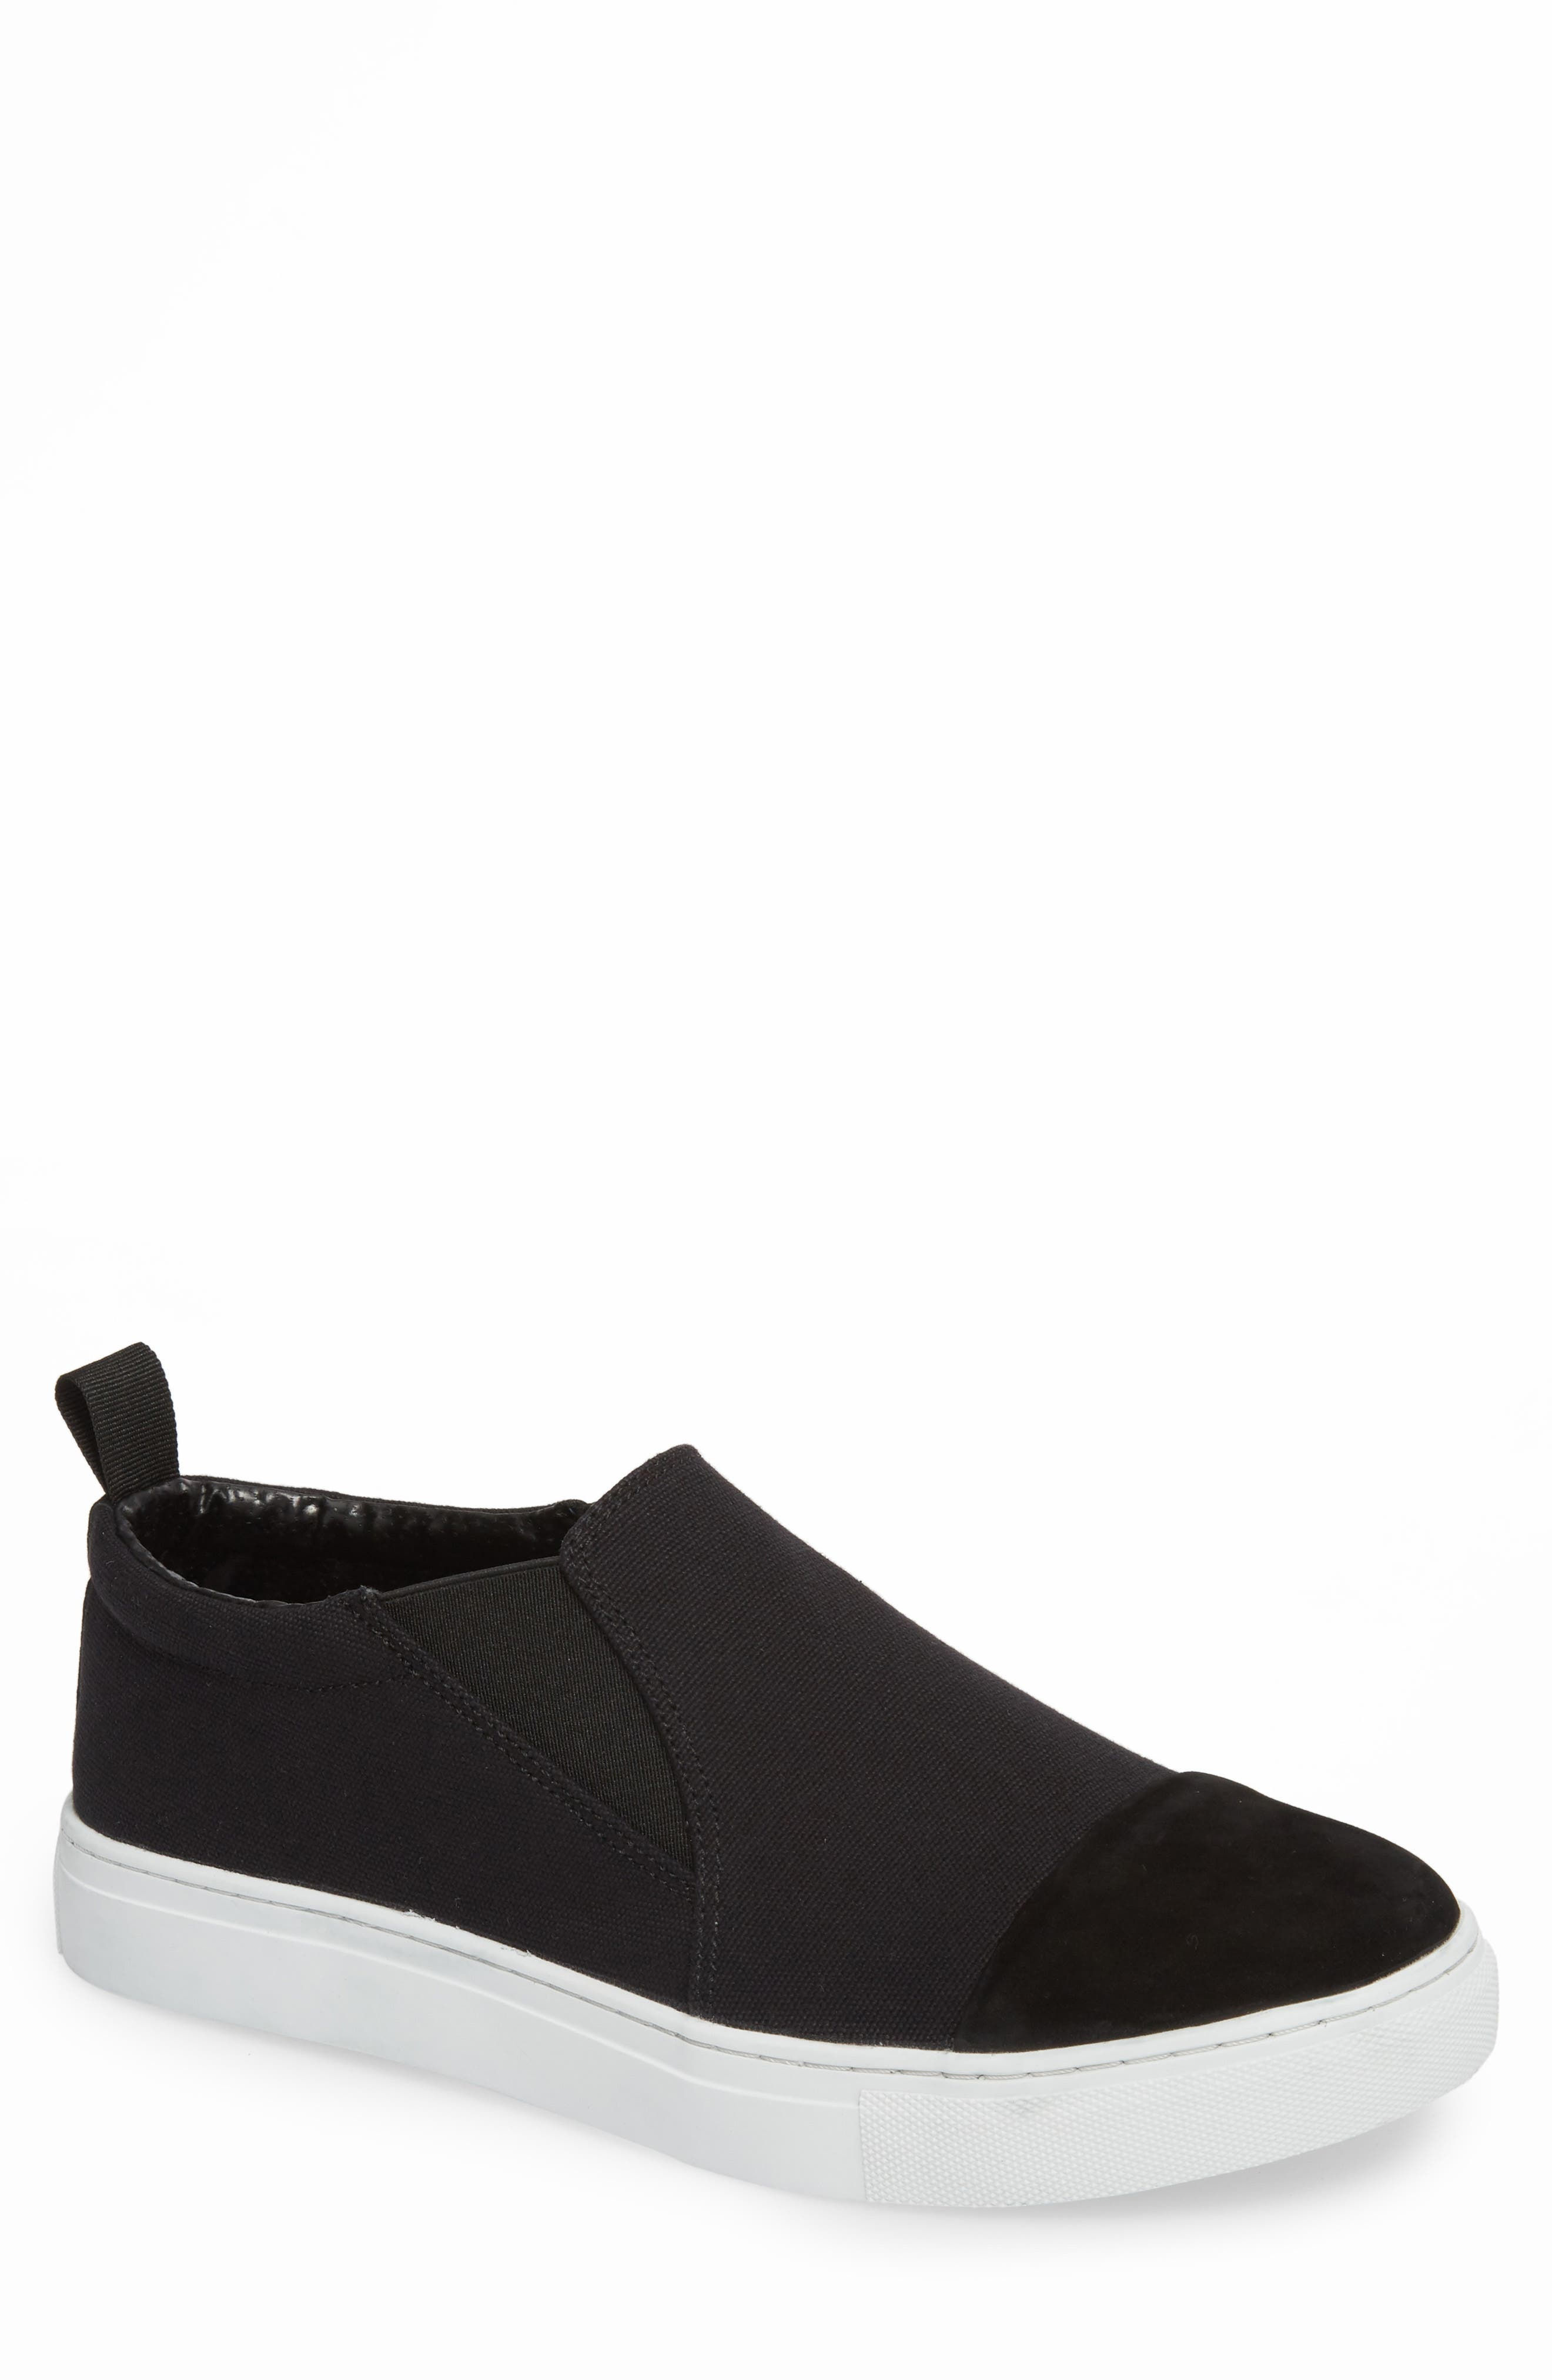 Canvas Suede Slider Slip-On Sneaker,                             Main thumbnail 1, color,                             001